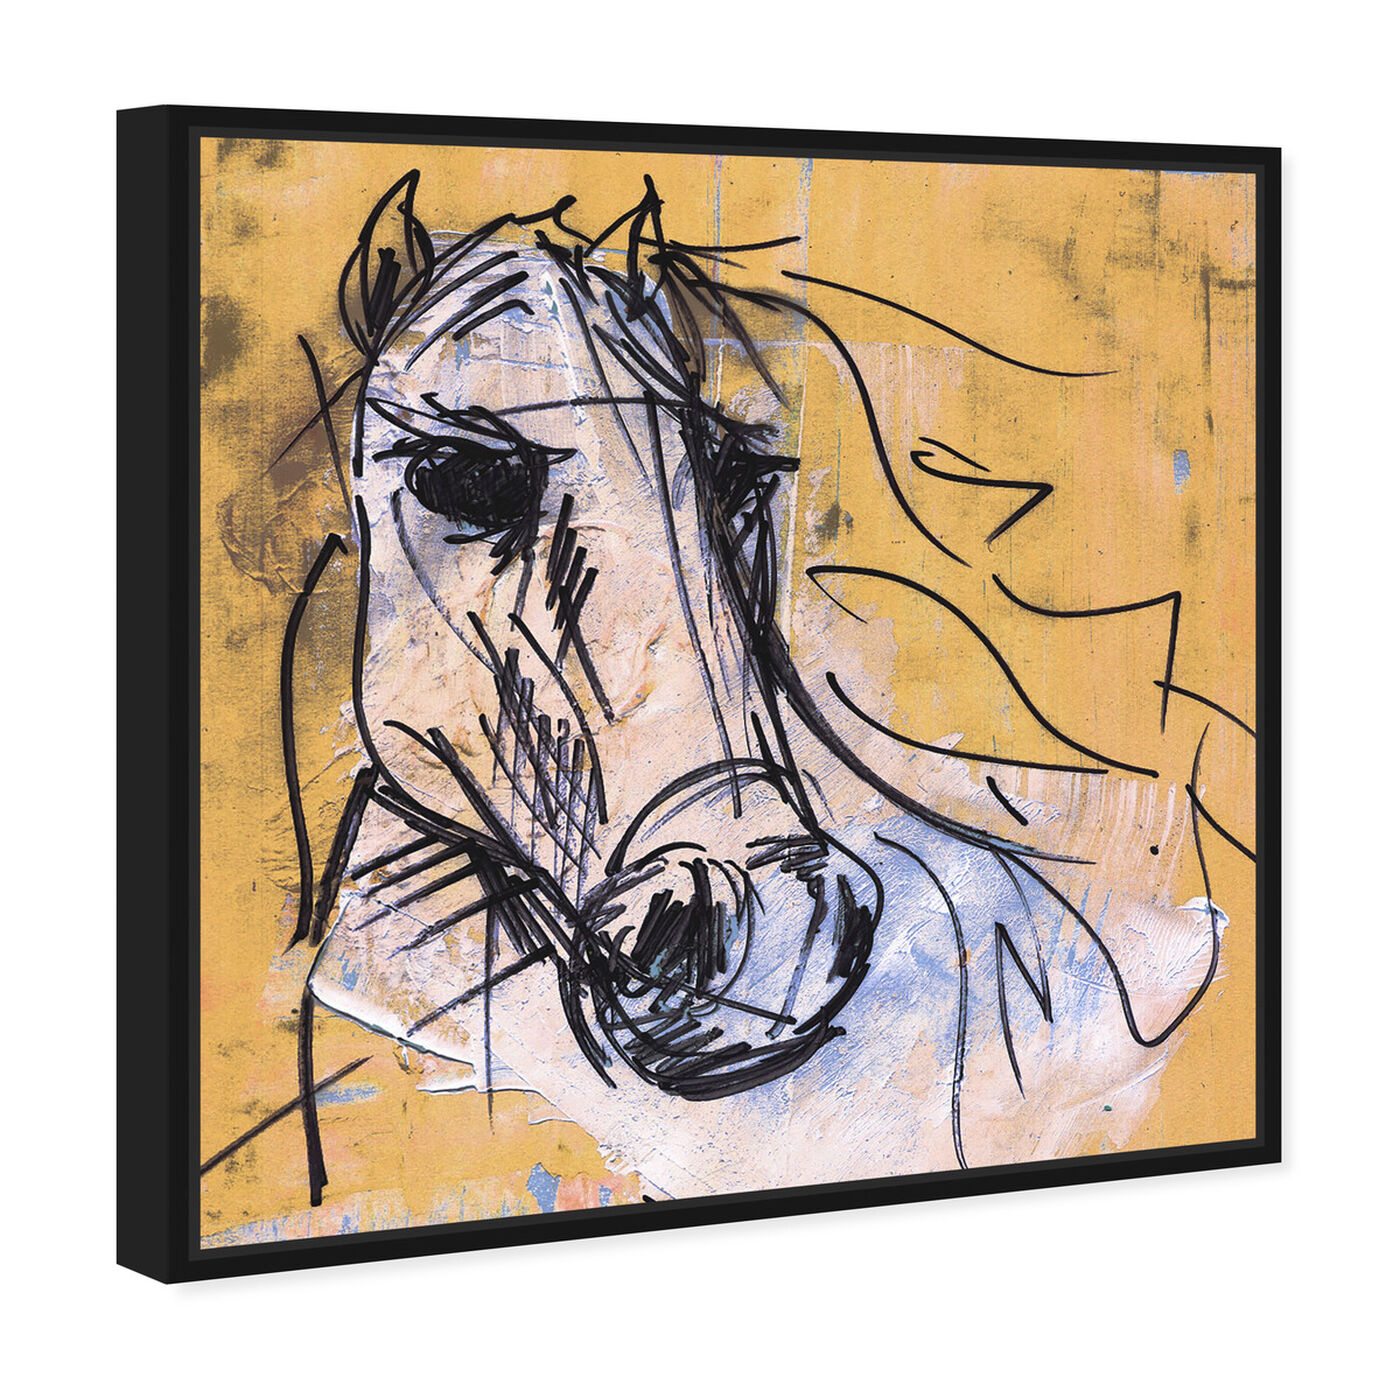 Angled view of Horse Study By Carson Kressley featuring animals and farm animals art.